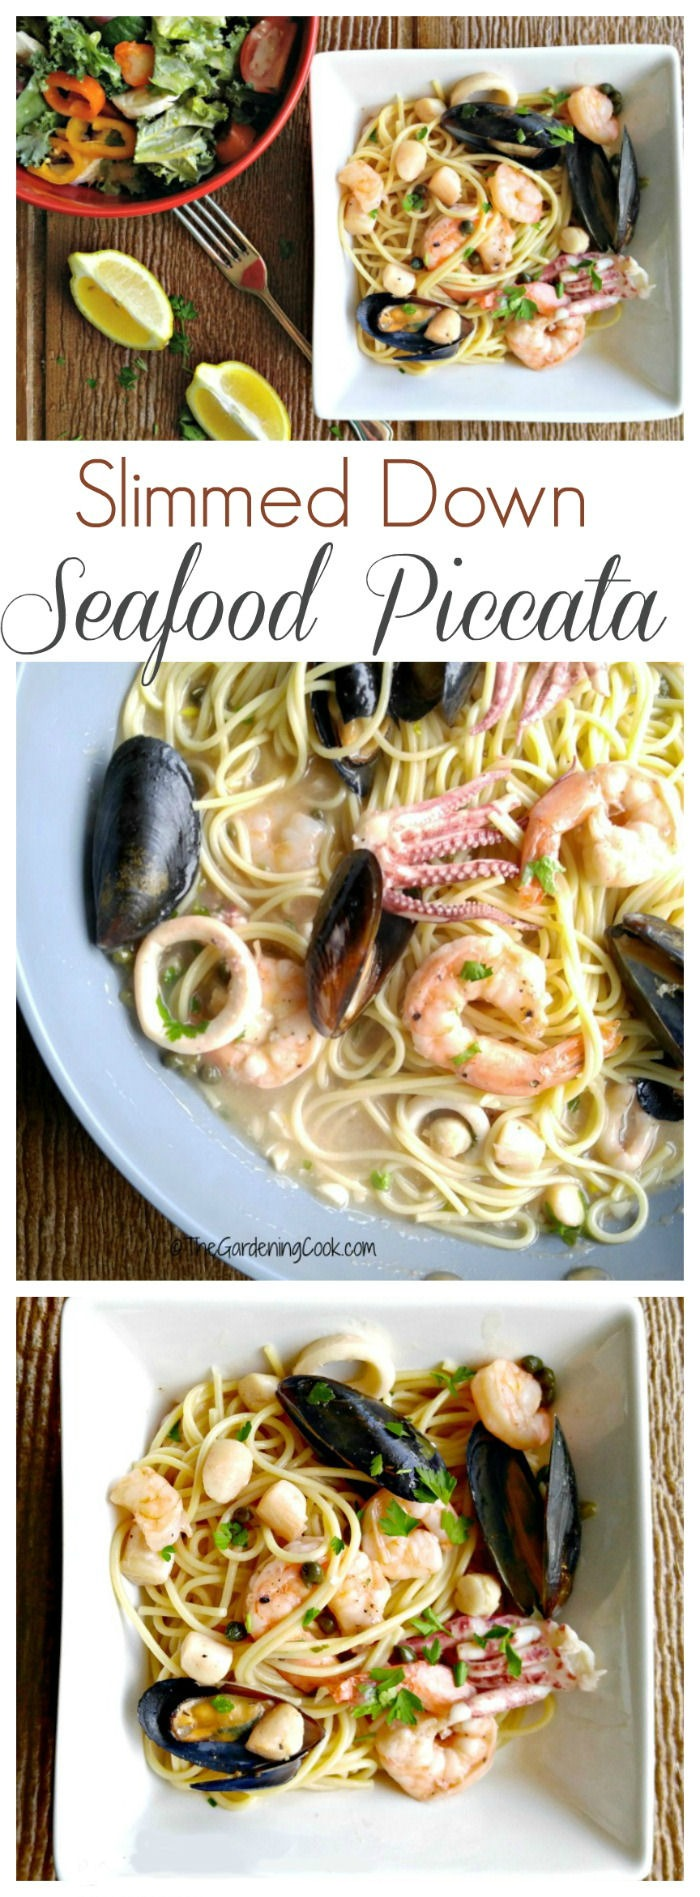 This light seafood piccata recipe is tangy and fresh tasting and has a lot less calories than the restaurant version. thegardeningcook.com